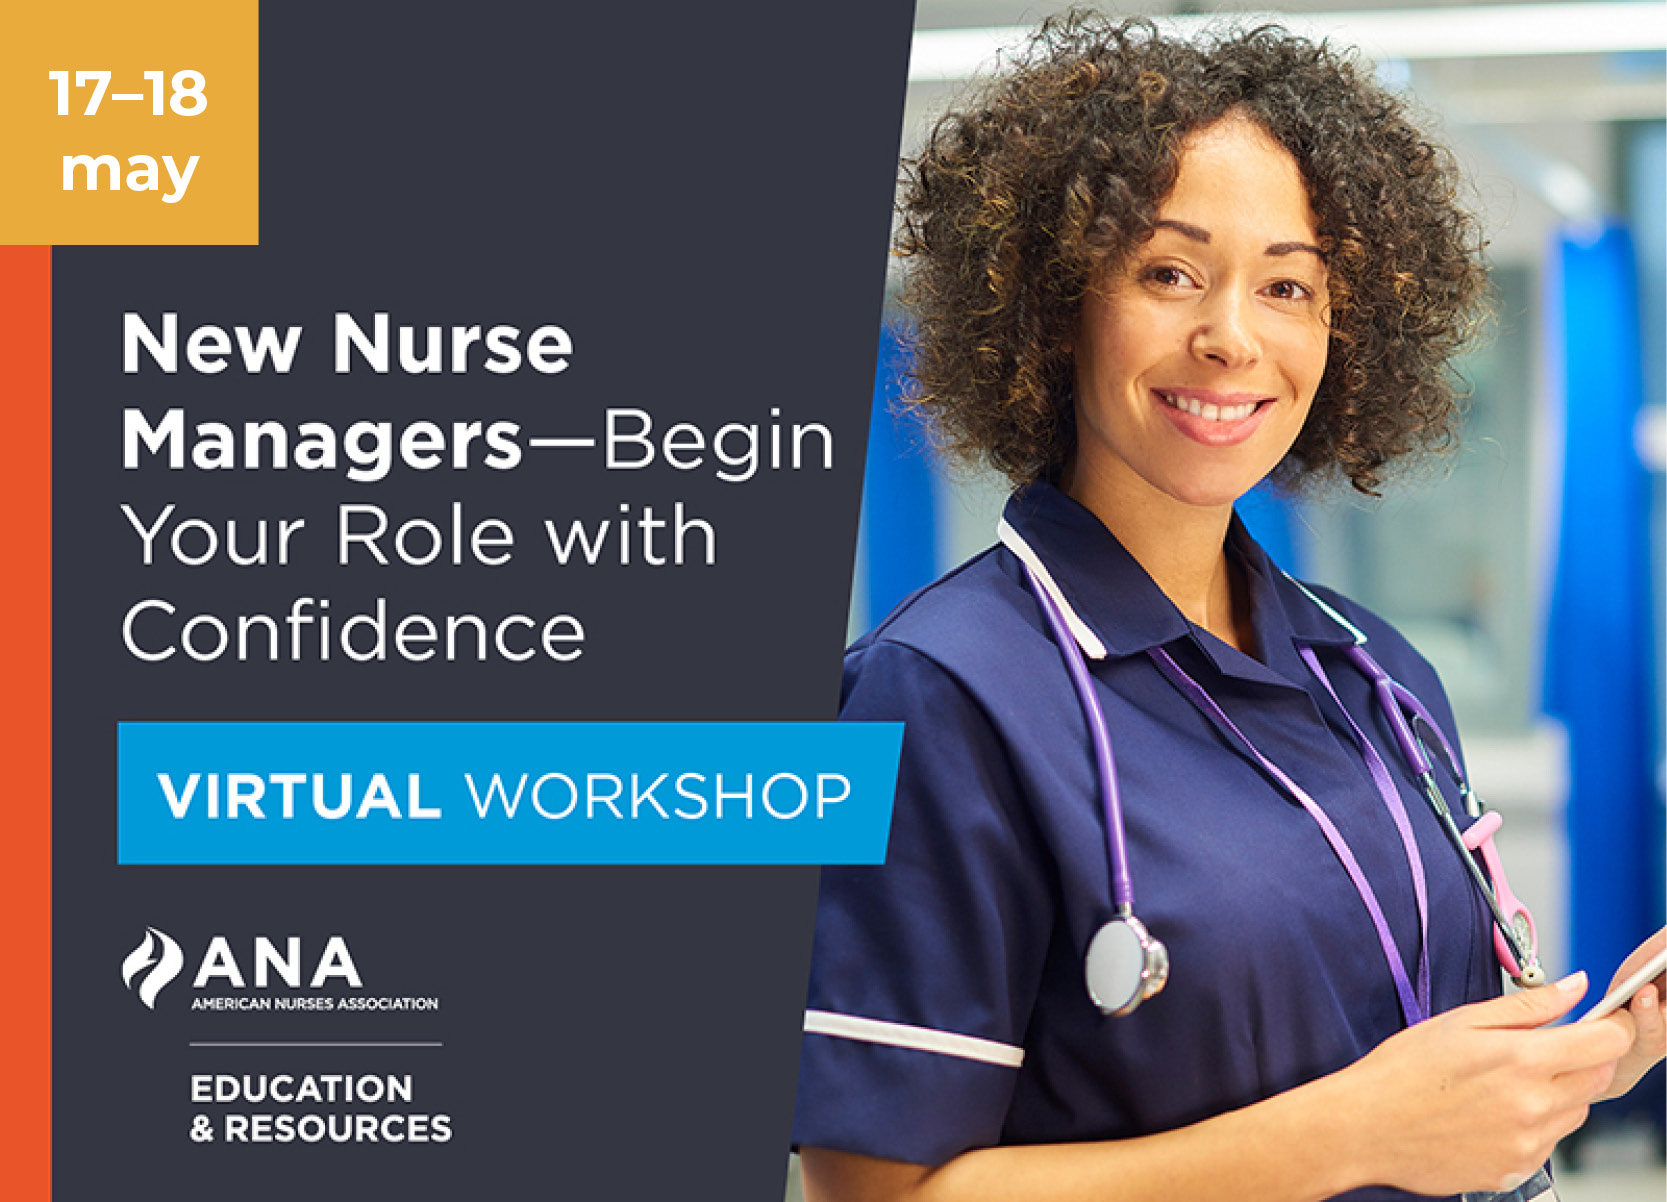 May 17–18. New Nurse Managers. Begin your role with confidence. Virtual Workshop. American Nurses Association Education and Resources.